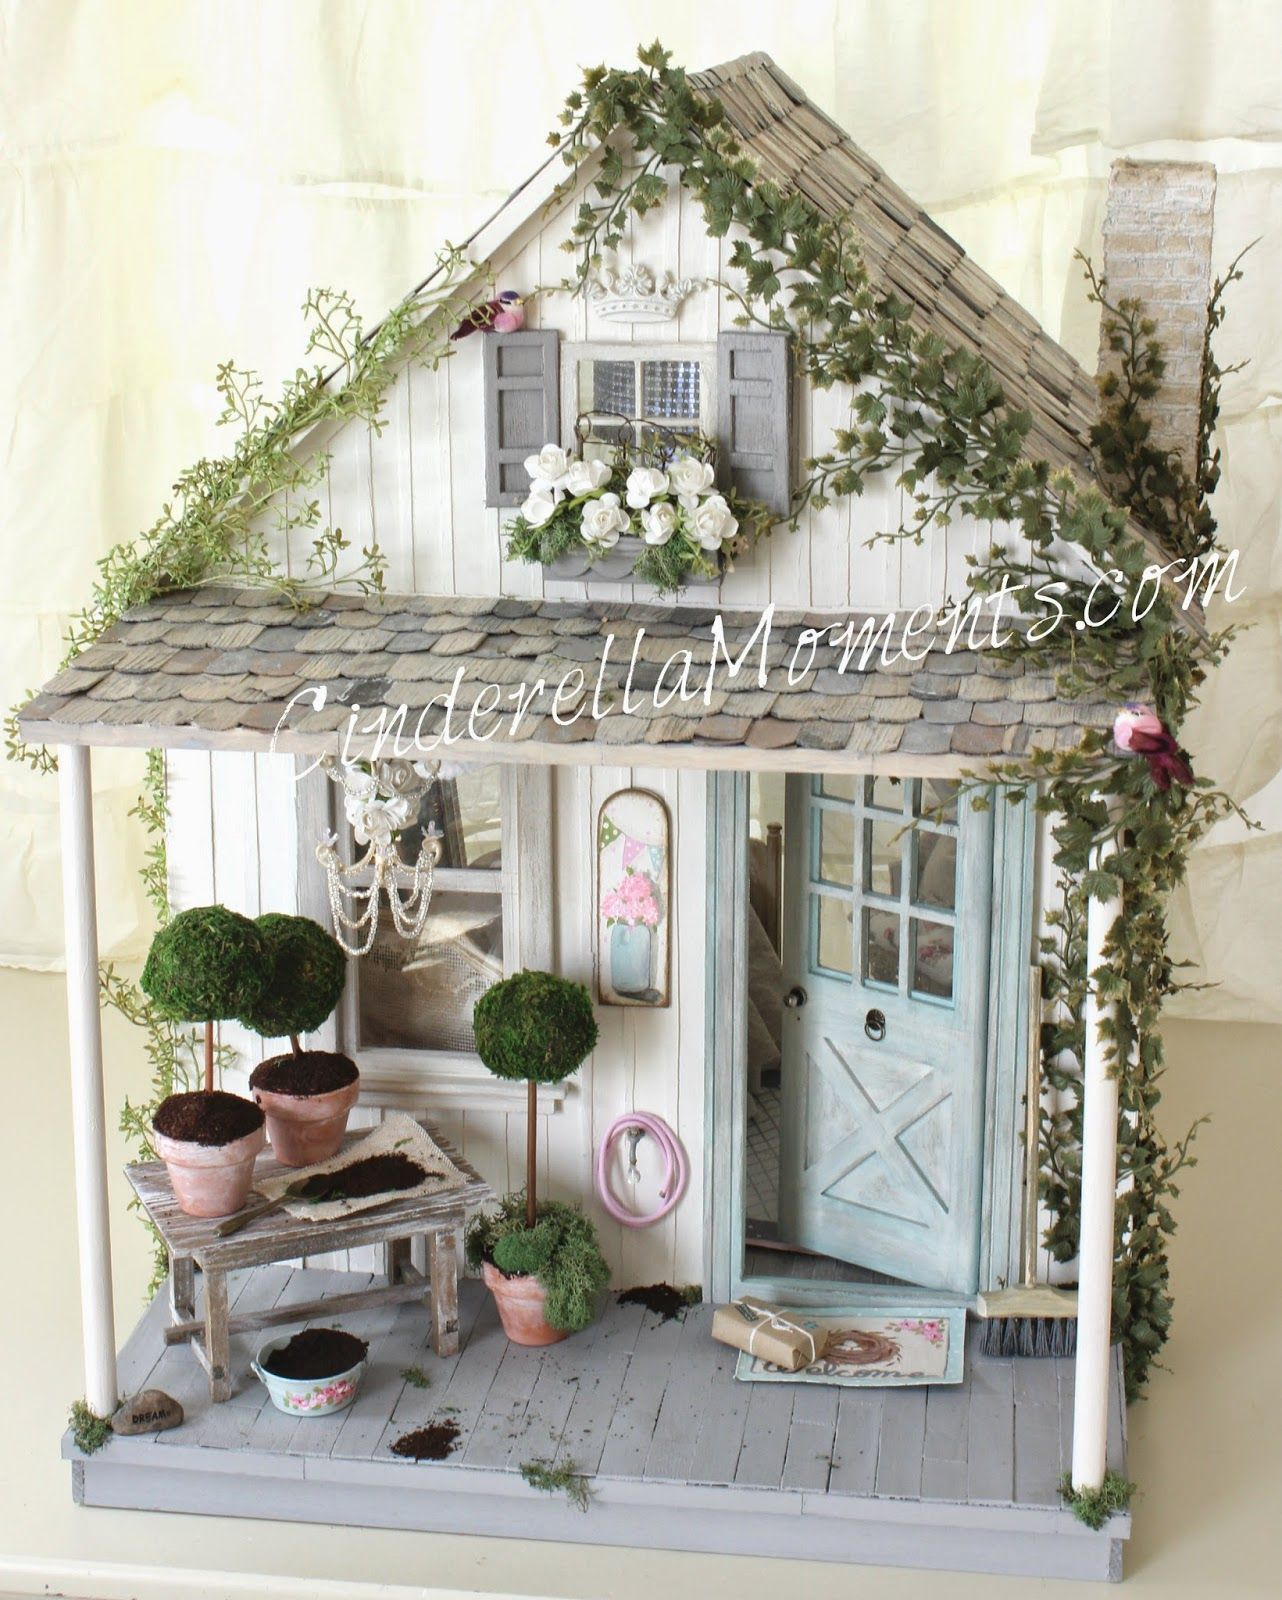 cinderella moments shabby blythe custom dollhouse crafting diy pinterest puppenstube. Black Bedroom Furniture Sets. Home Design Ideas